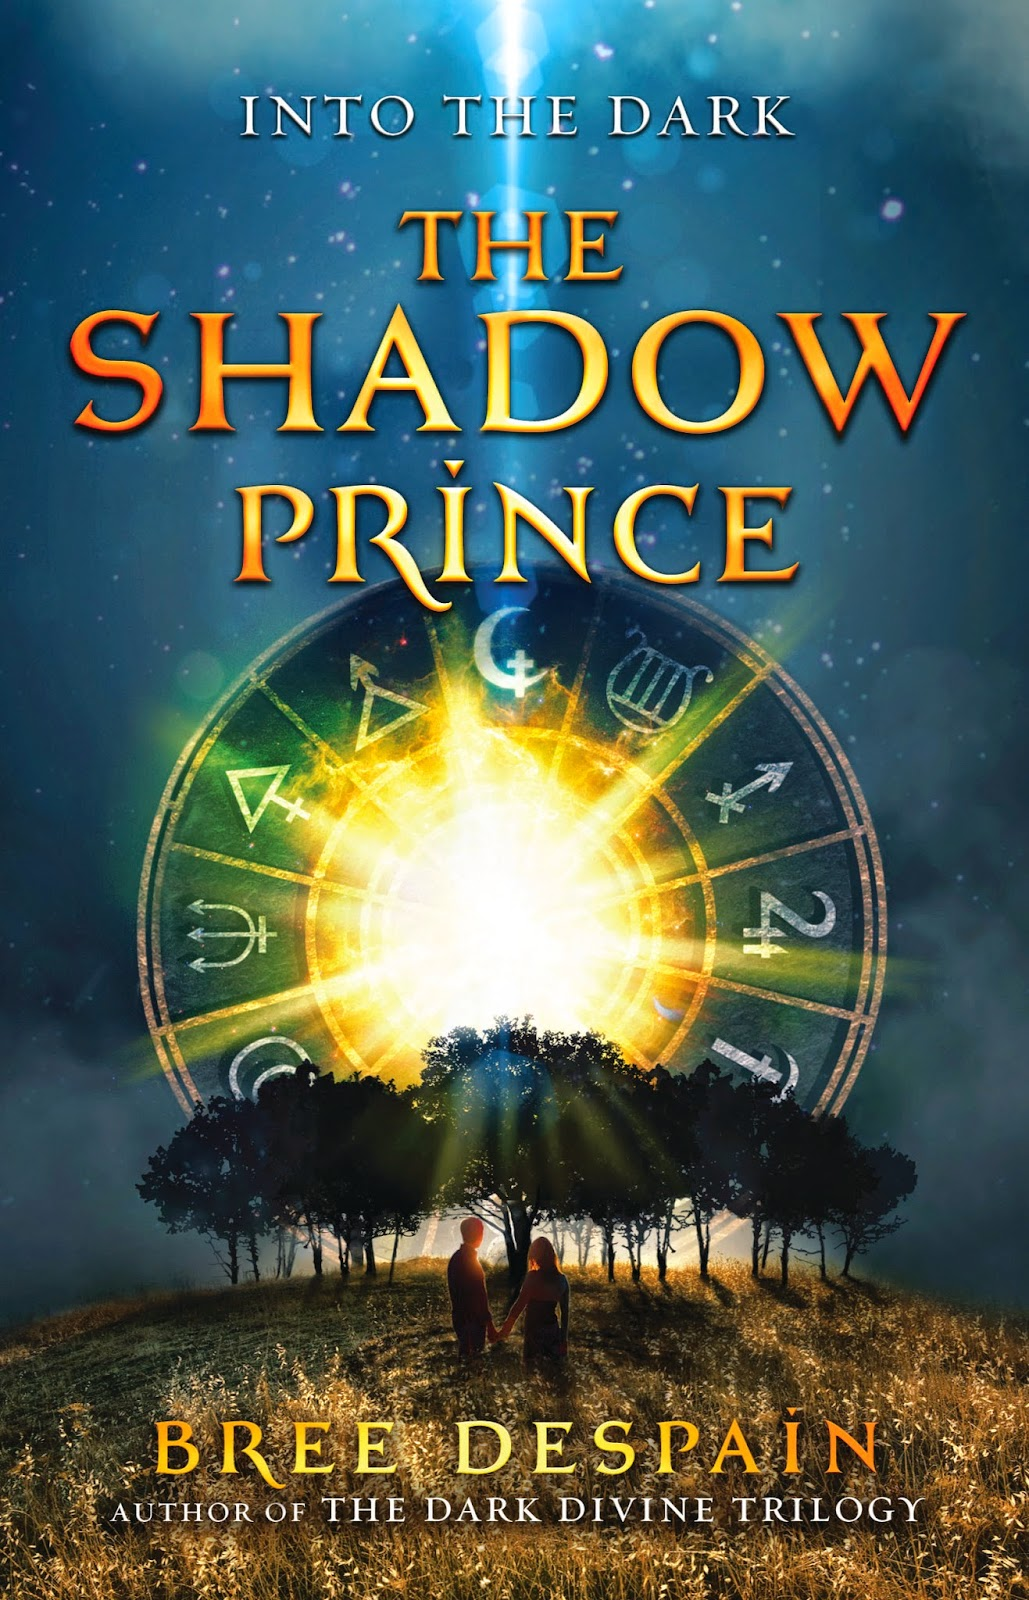 into the dark book one: the shadow prince by bree despain book cover